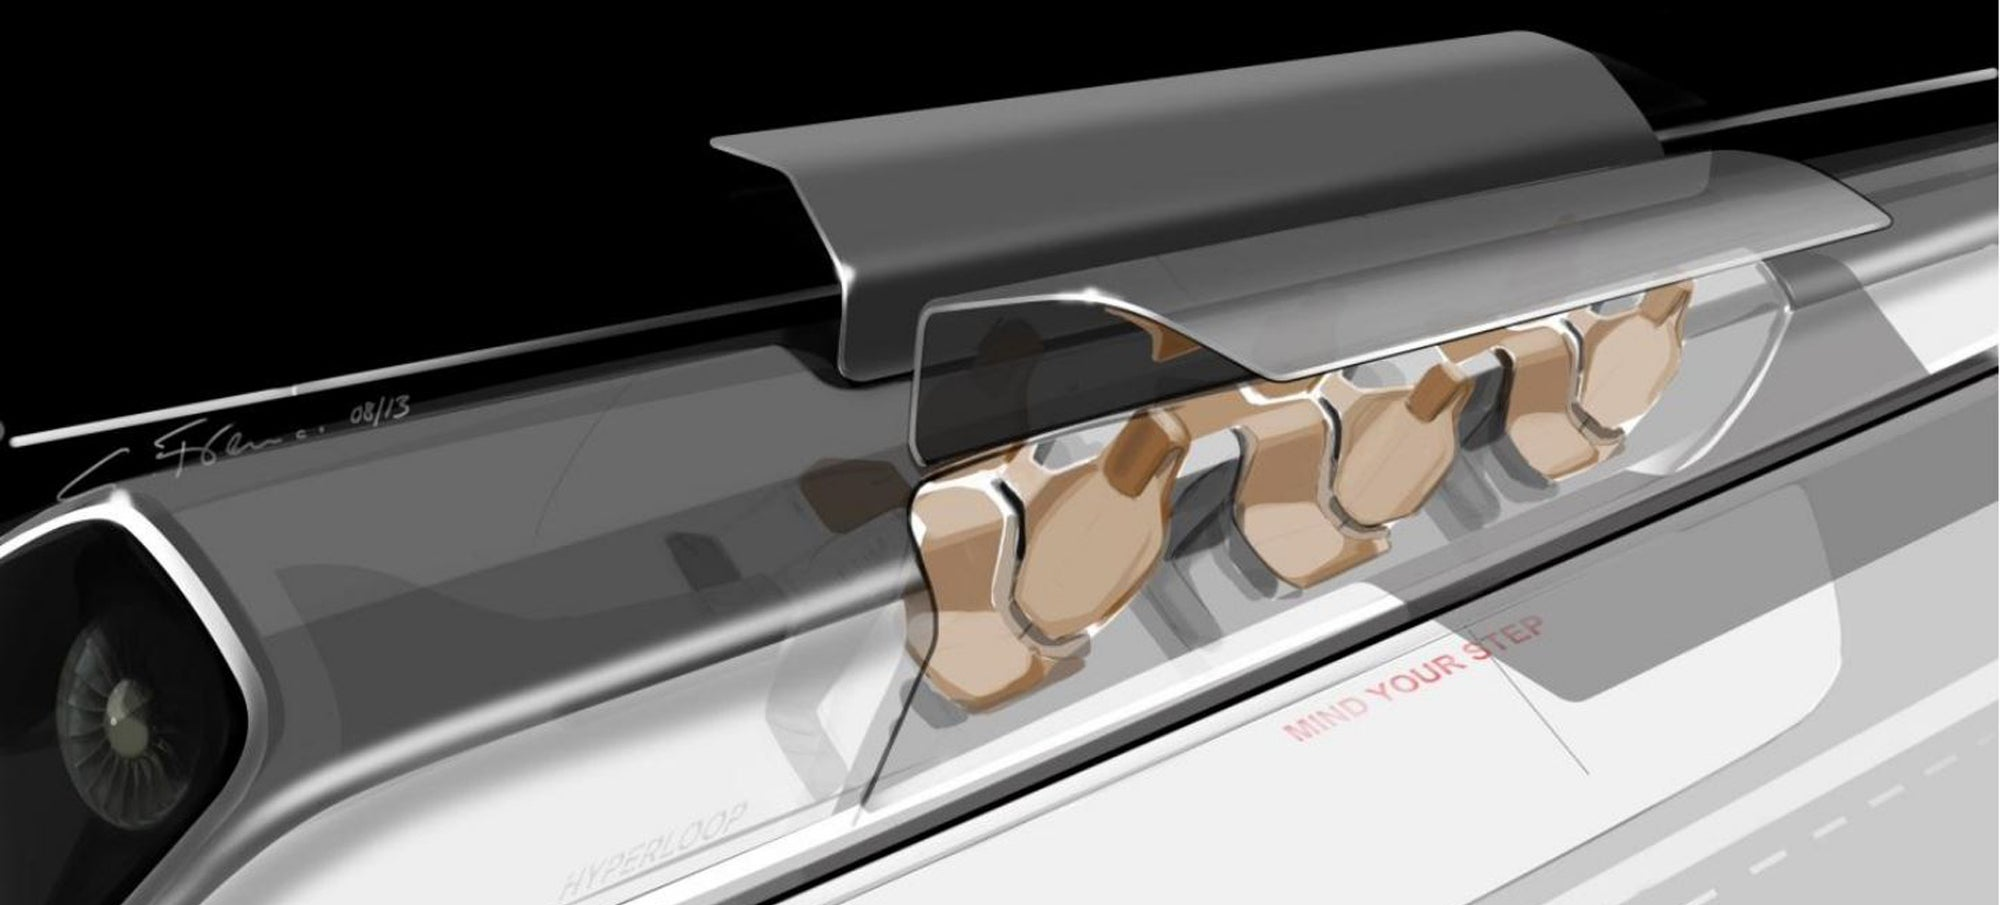 MIT Wins Hyperloop Prototype Design Competition